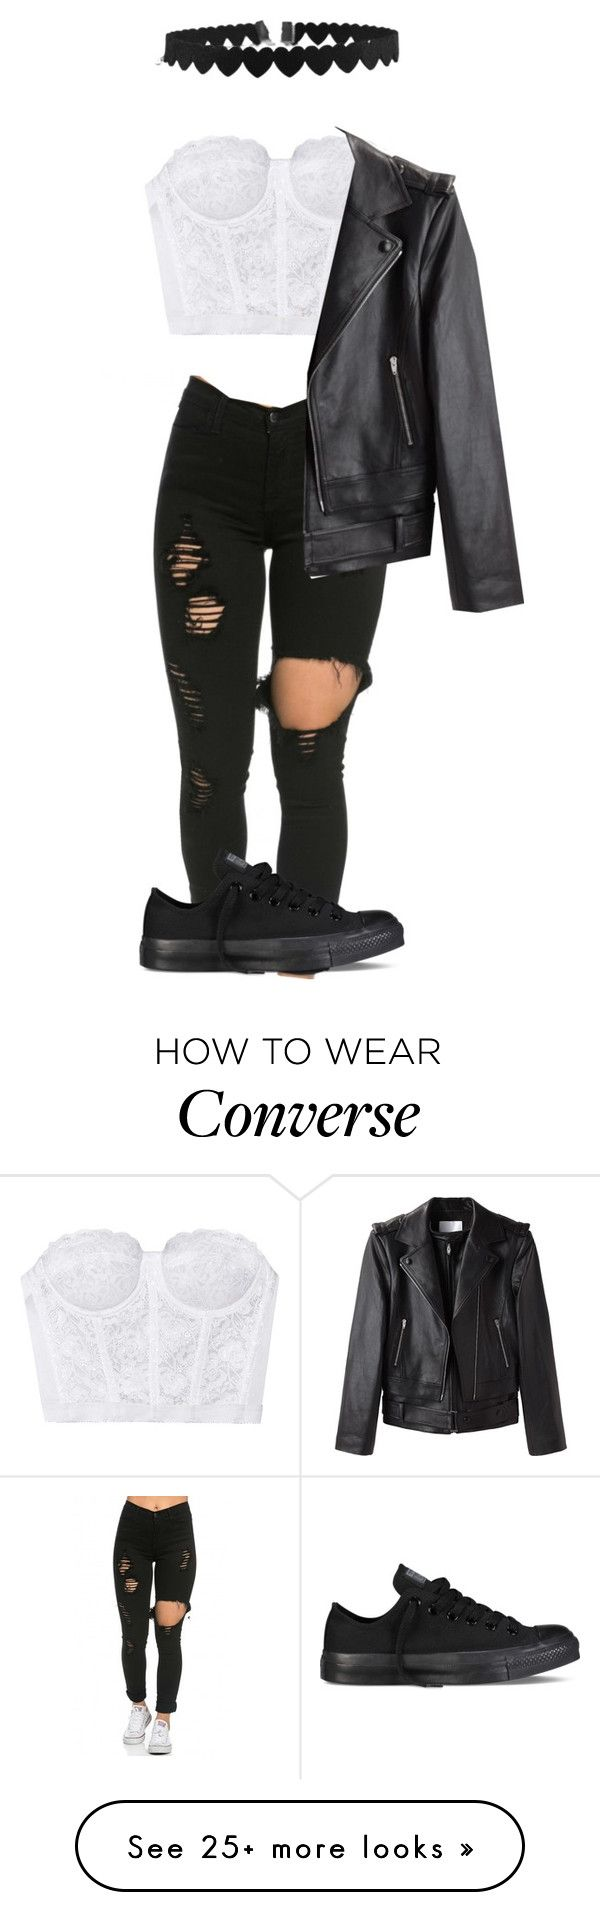 """/I'm scared to get close, and I hate being alone"" by punk-rock-dreamer on Polyvore featuring Alexander Wang and Converse"